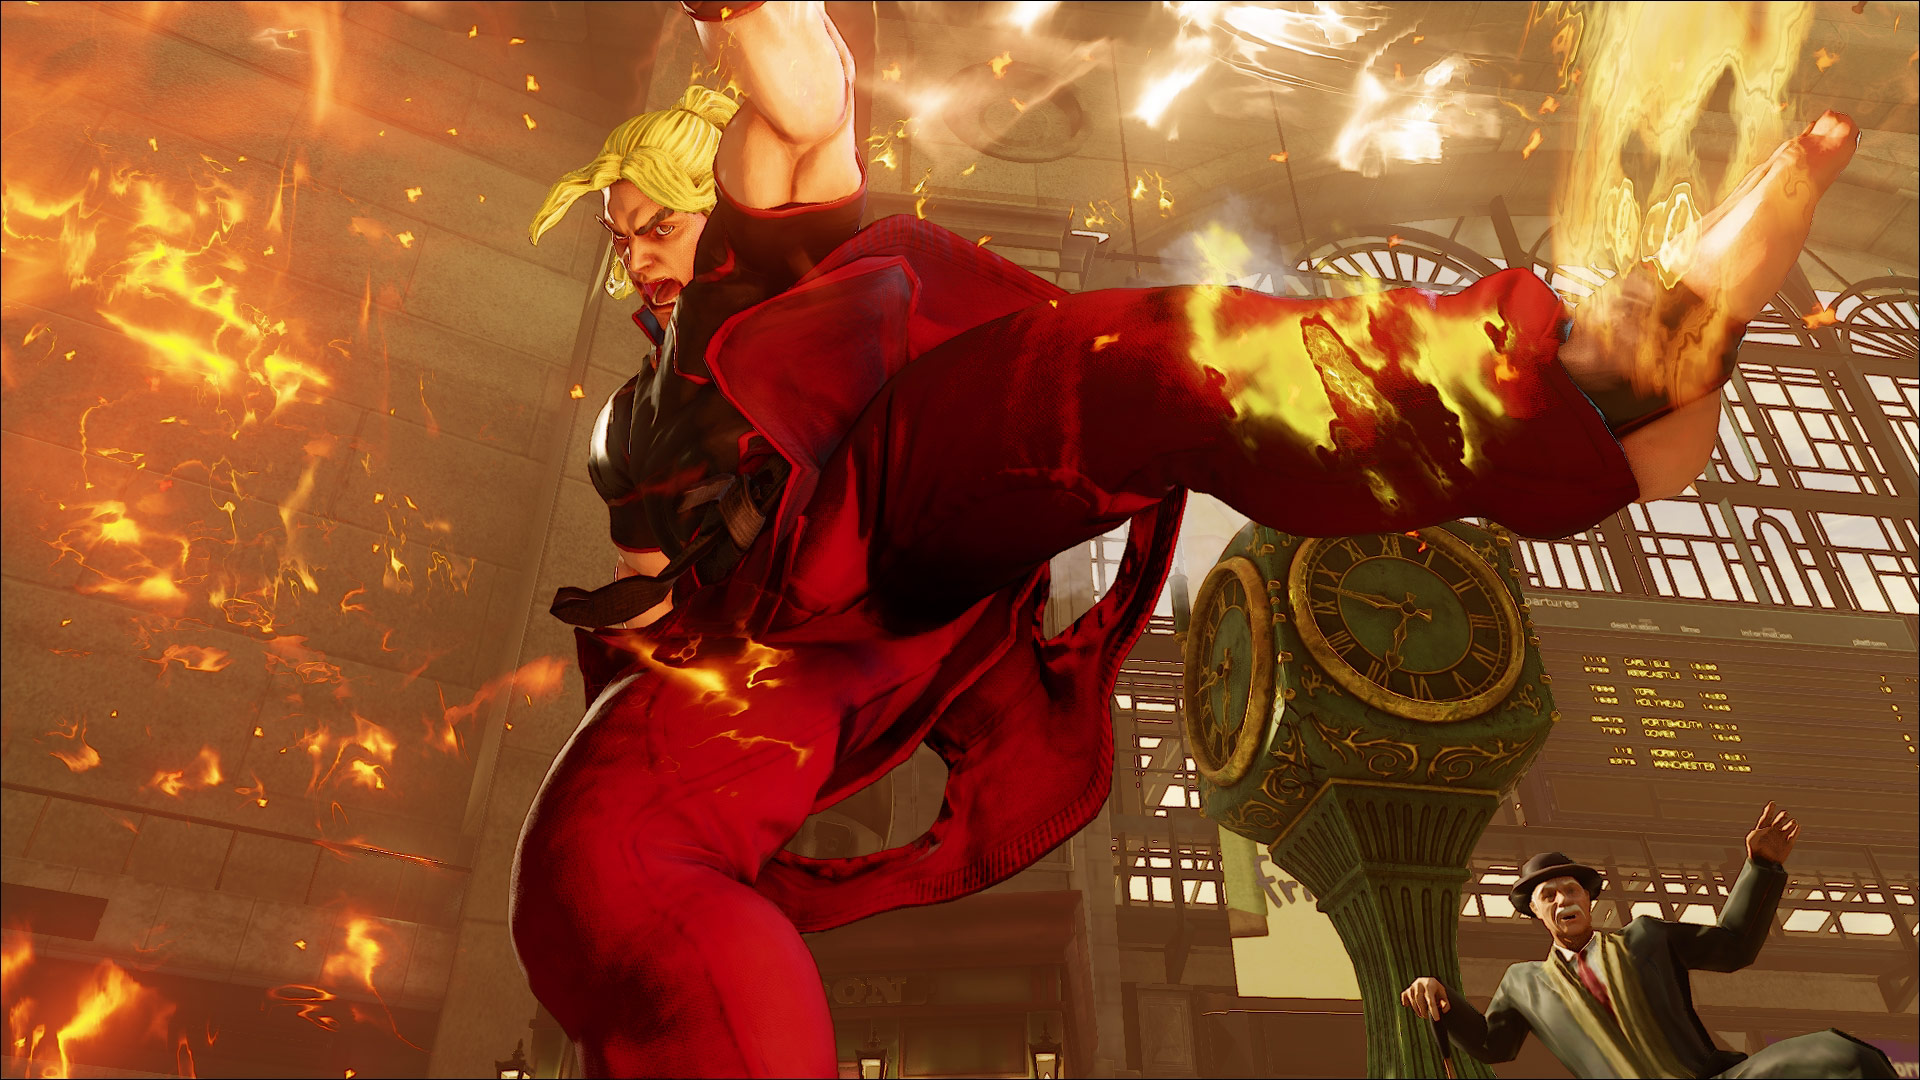 Ken Street Fighter 5 SDCC 2015 reveal 3 out of 13 image gallery